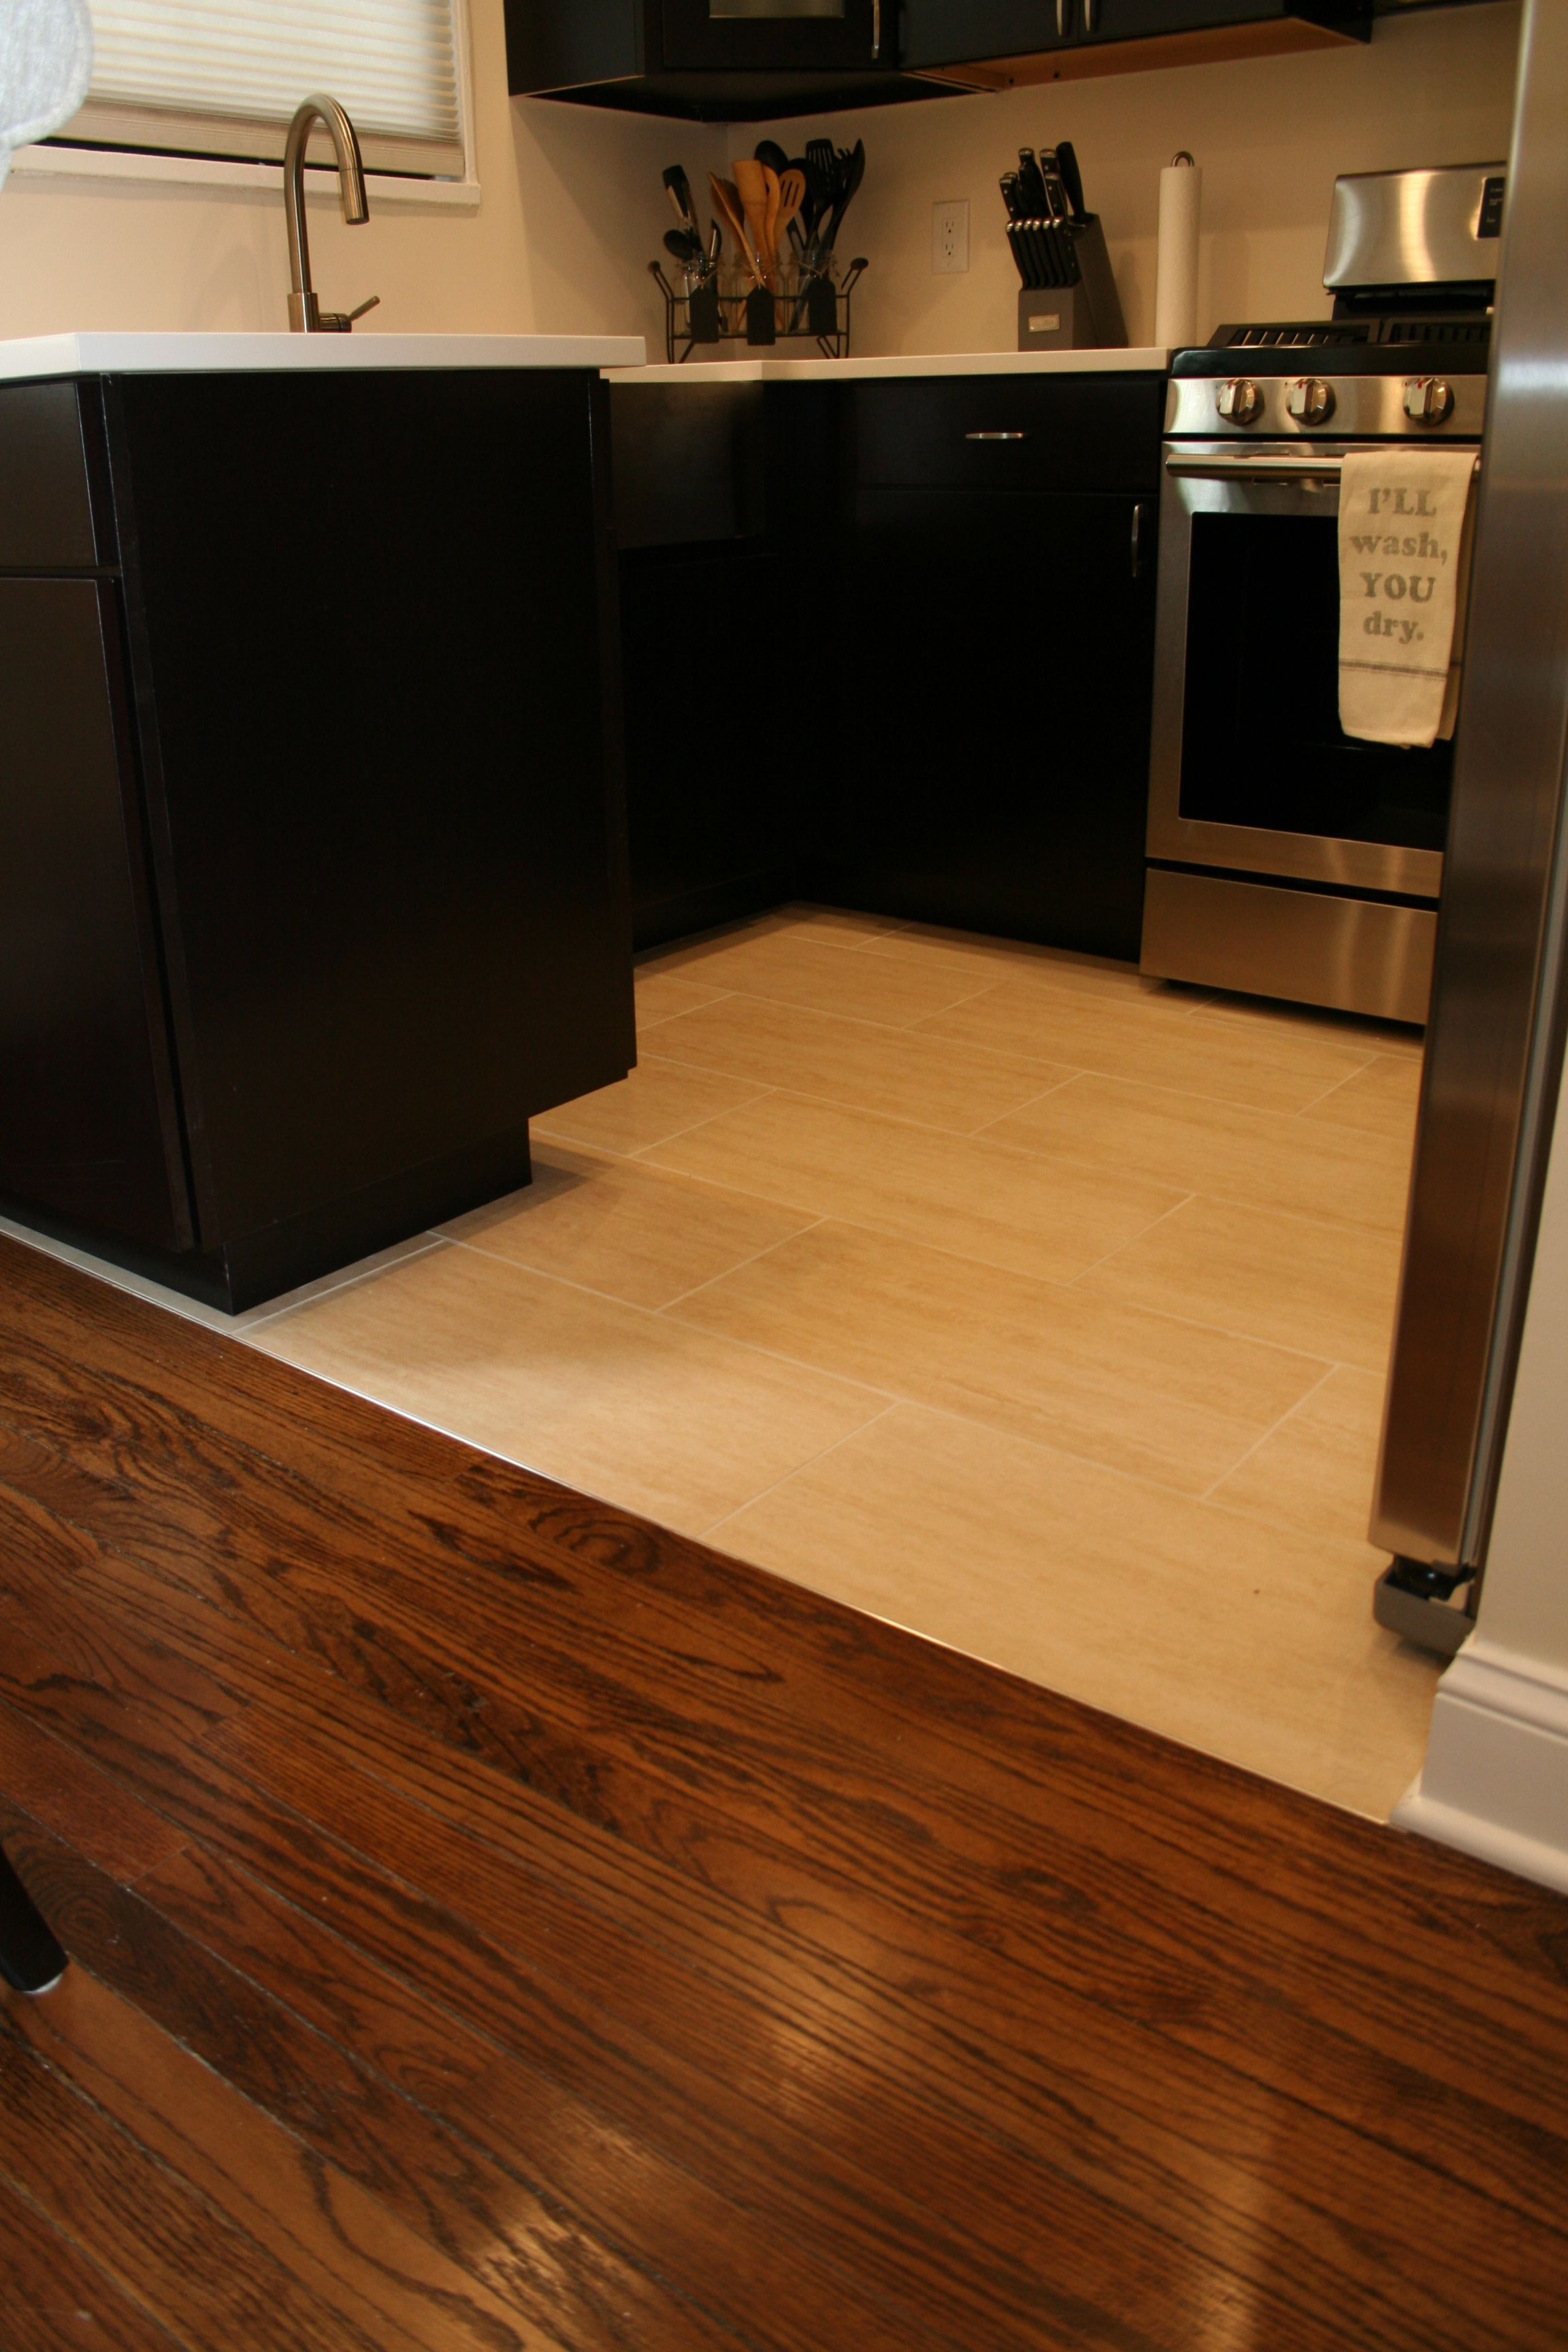 lowes hardwood floor transition of how much is laminate wood flooring floor plan ideas with regard to how much is laminate wood flooring transition from tile to wood floors light to dark flooring